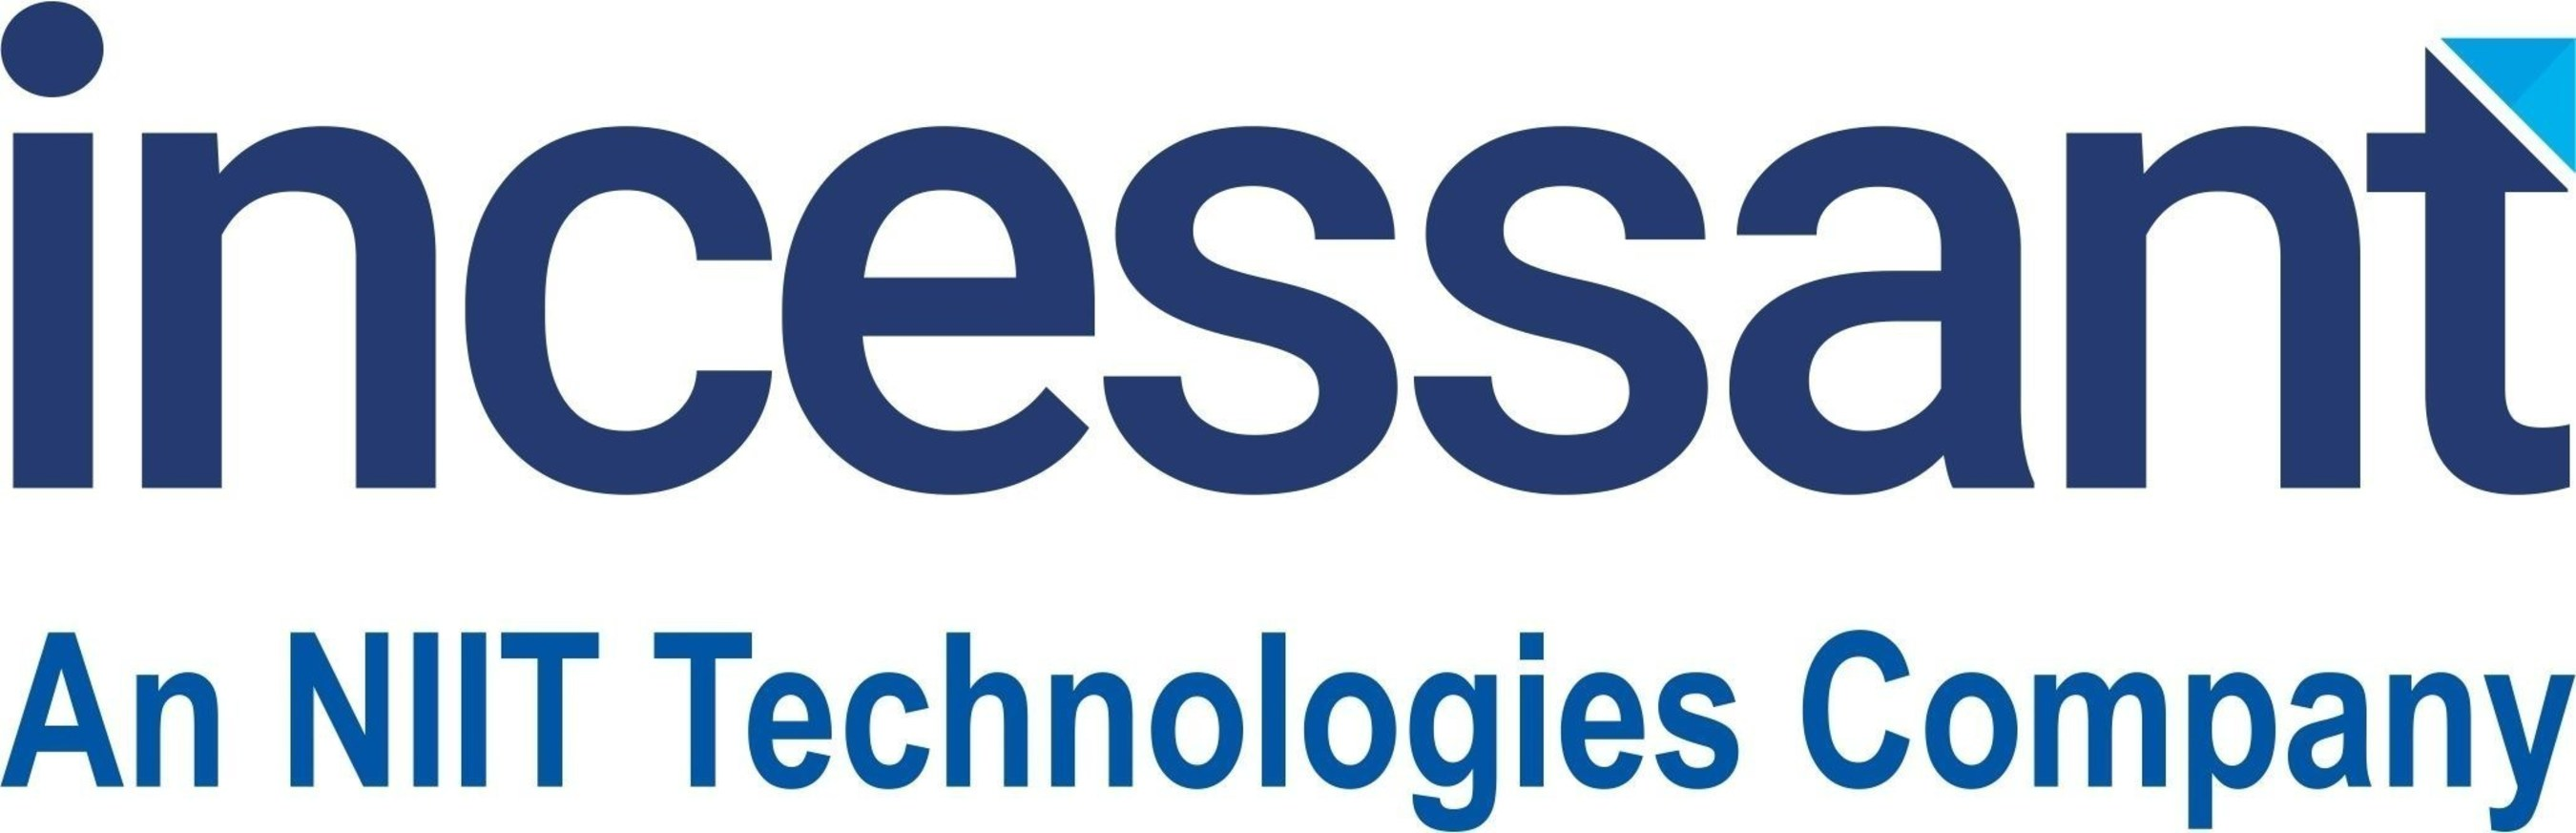 Incessant Technologies, an NIIT Technologies Company, Becomes a Pegasystems Inc. Systems Integrator Partner